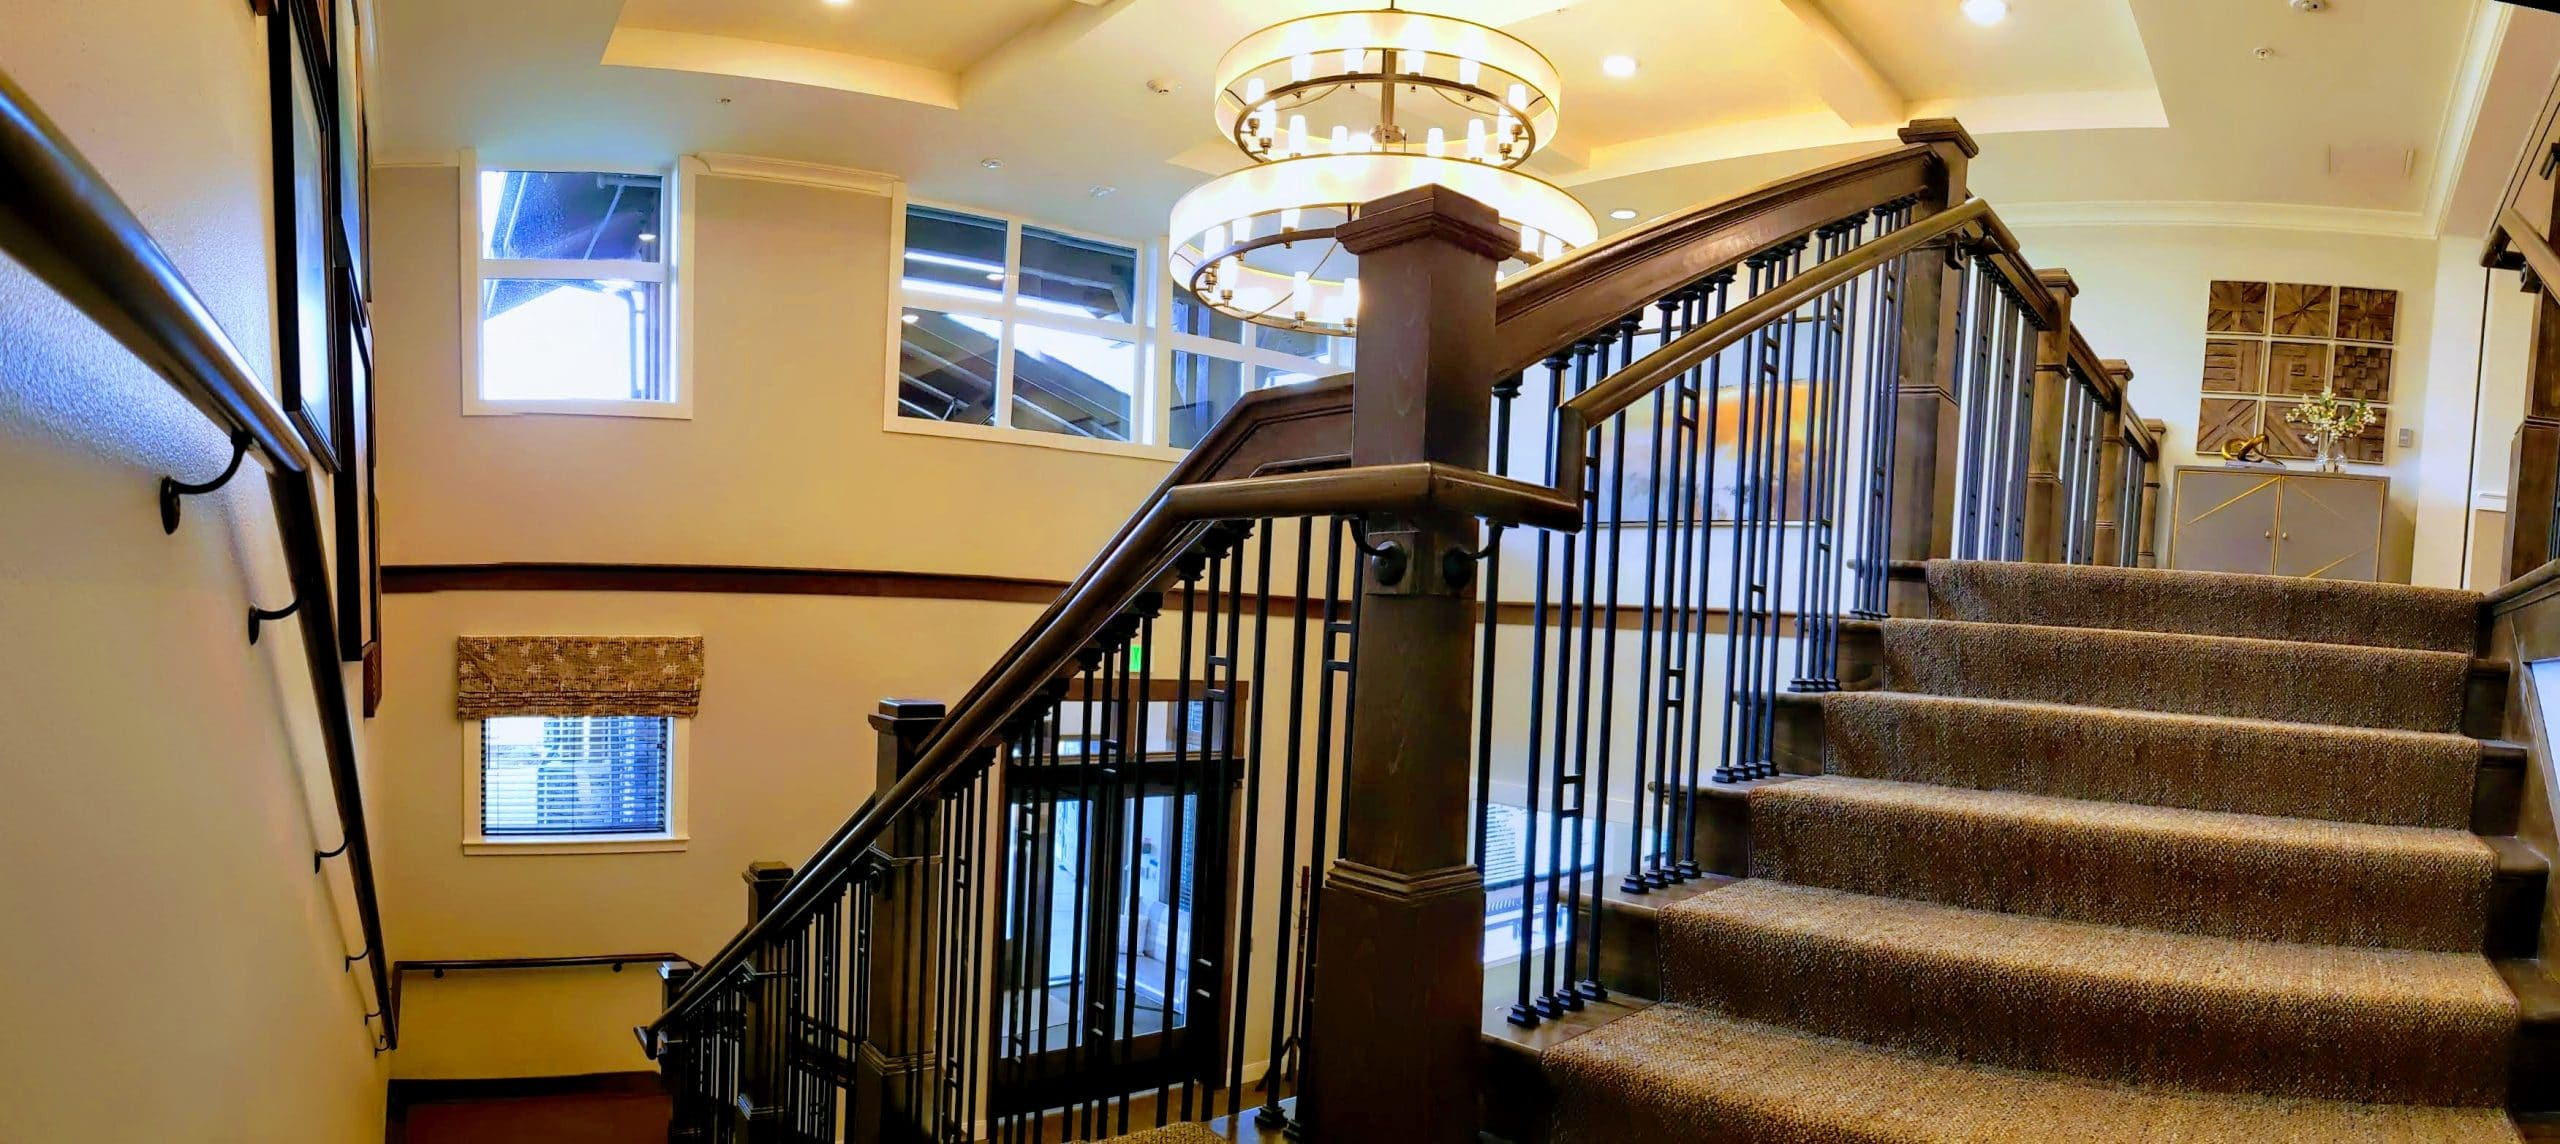 interior commercial painting company